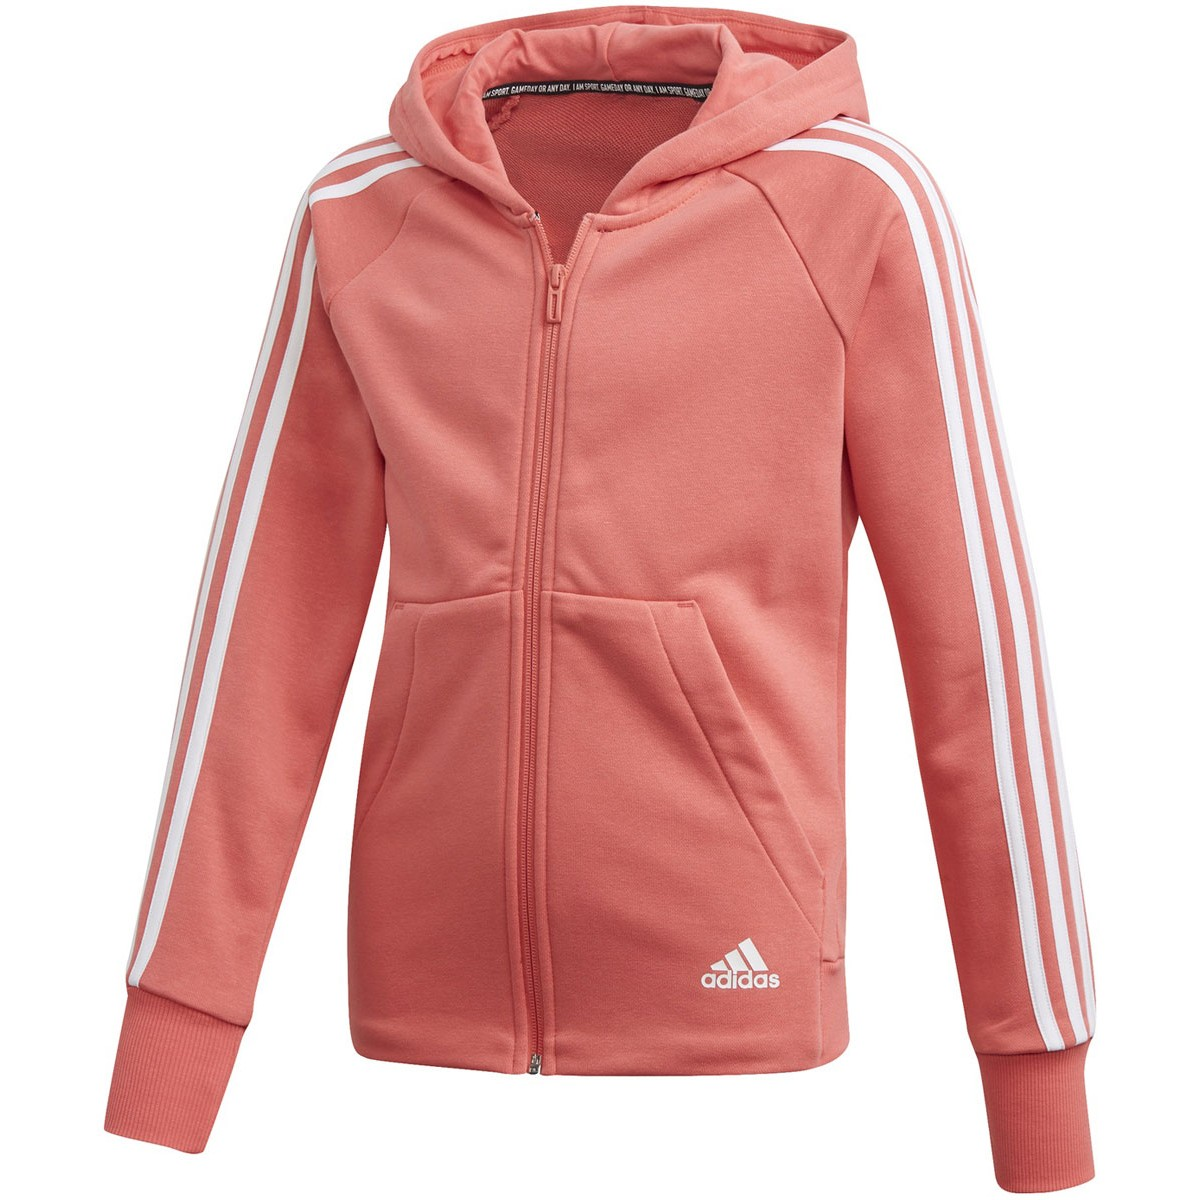 FELPA ADIDAS TRAINING JUNIOR BAMBINA 35 ADIDAS Junior